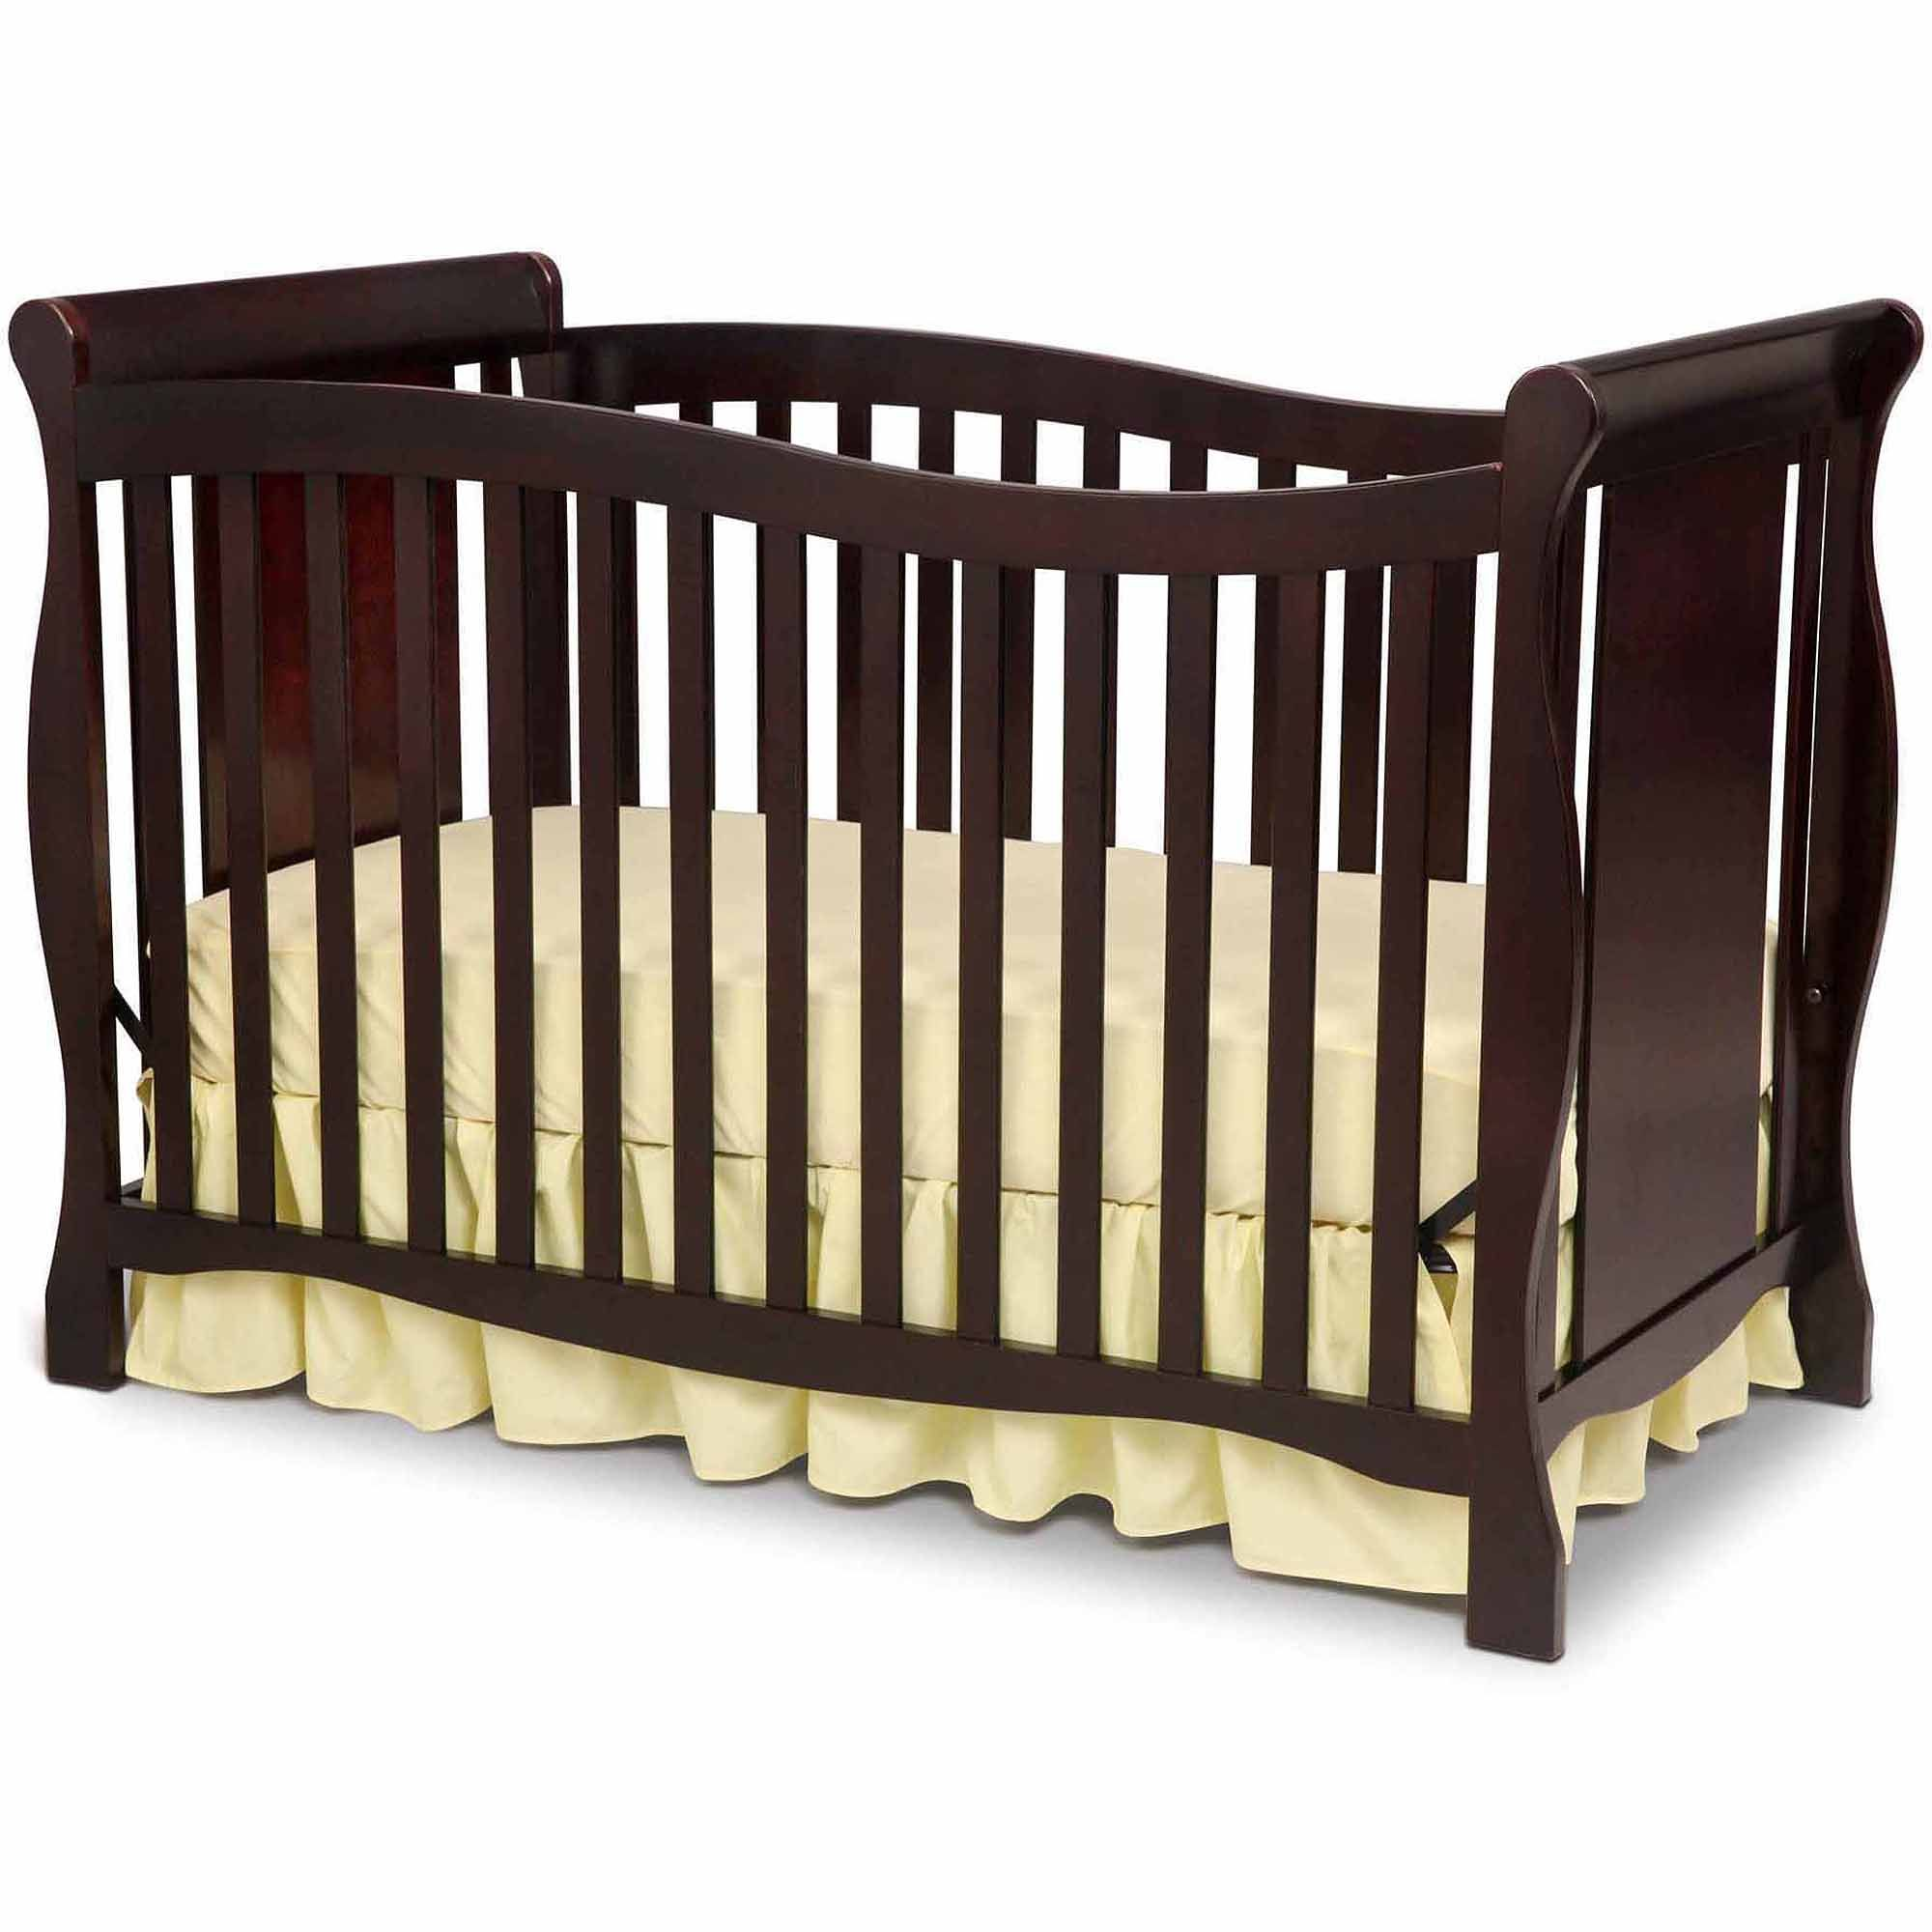 Delta Children S Products Brookside 4 In 1 Fixed Side Crib Choose Your Finish Price Delta Children Cribs Convertible Crib